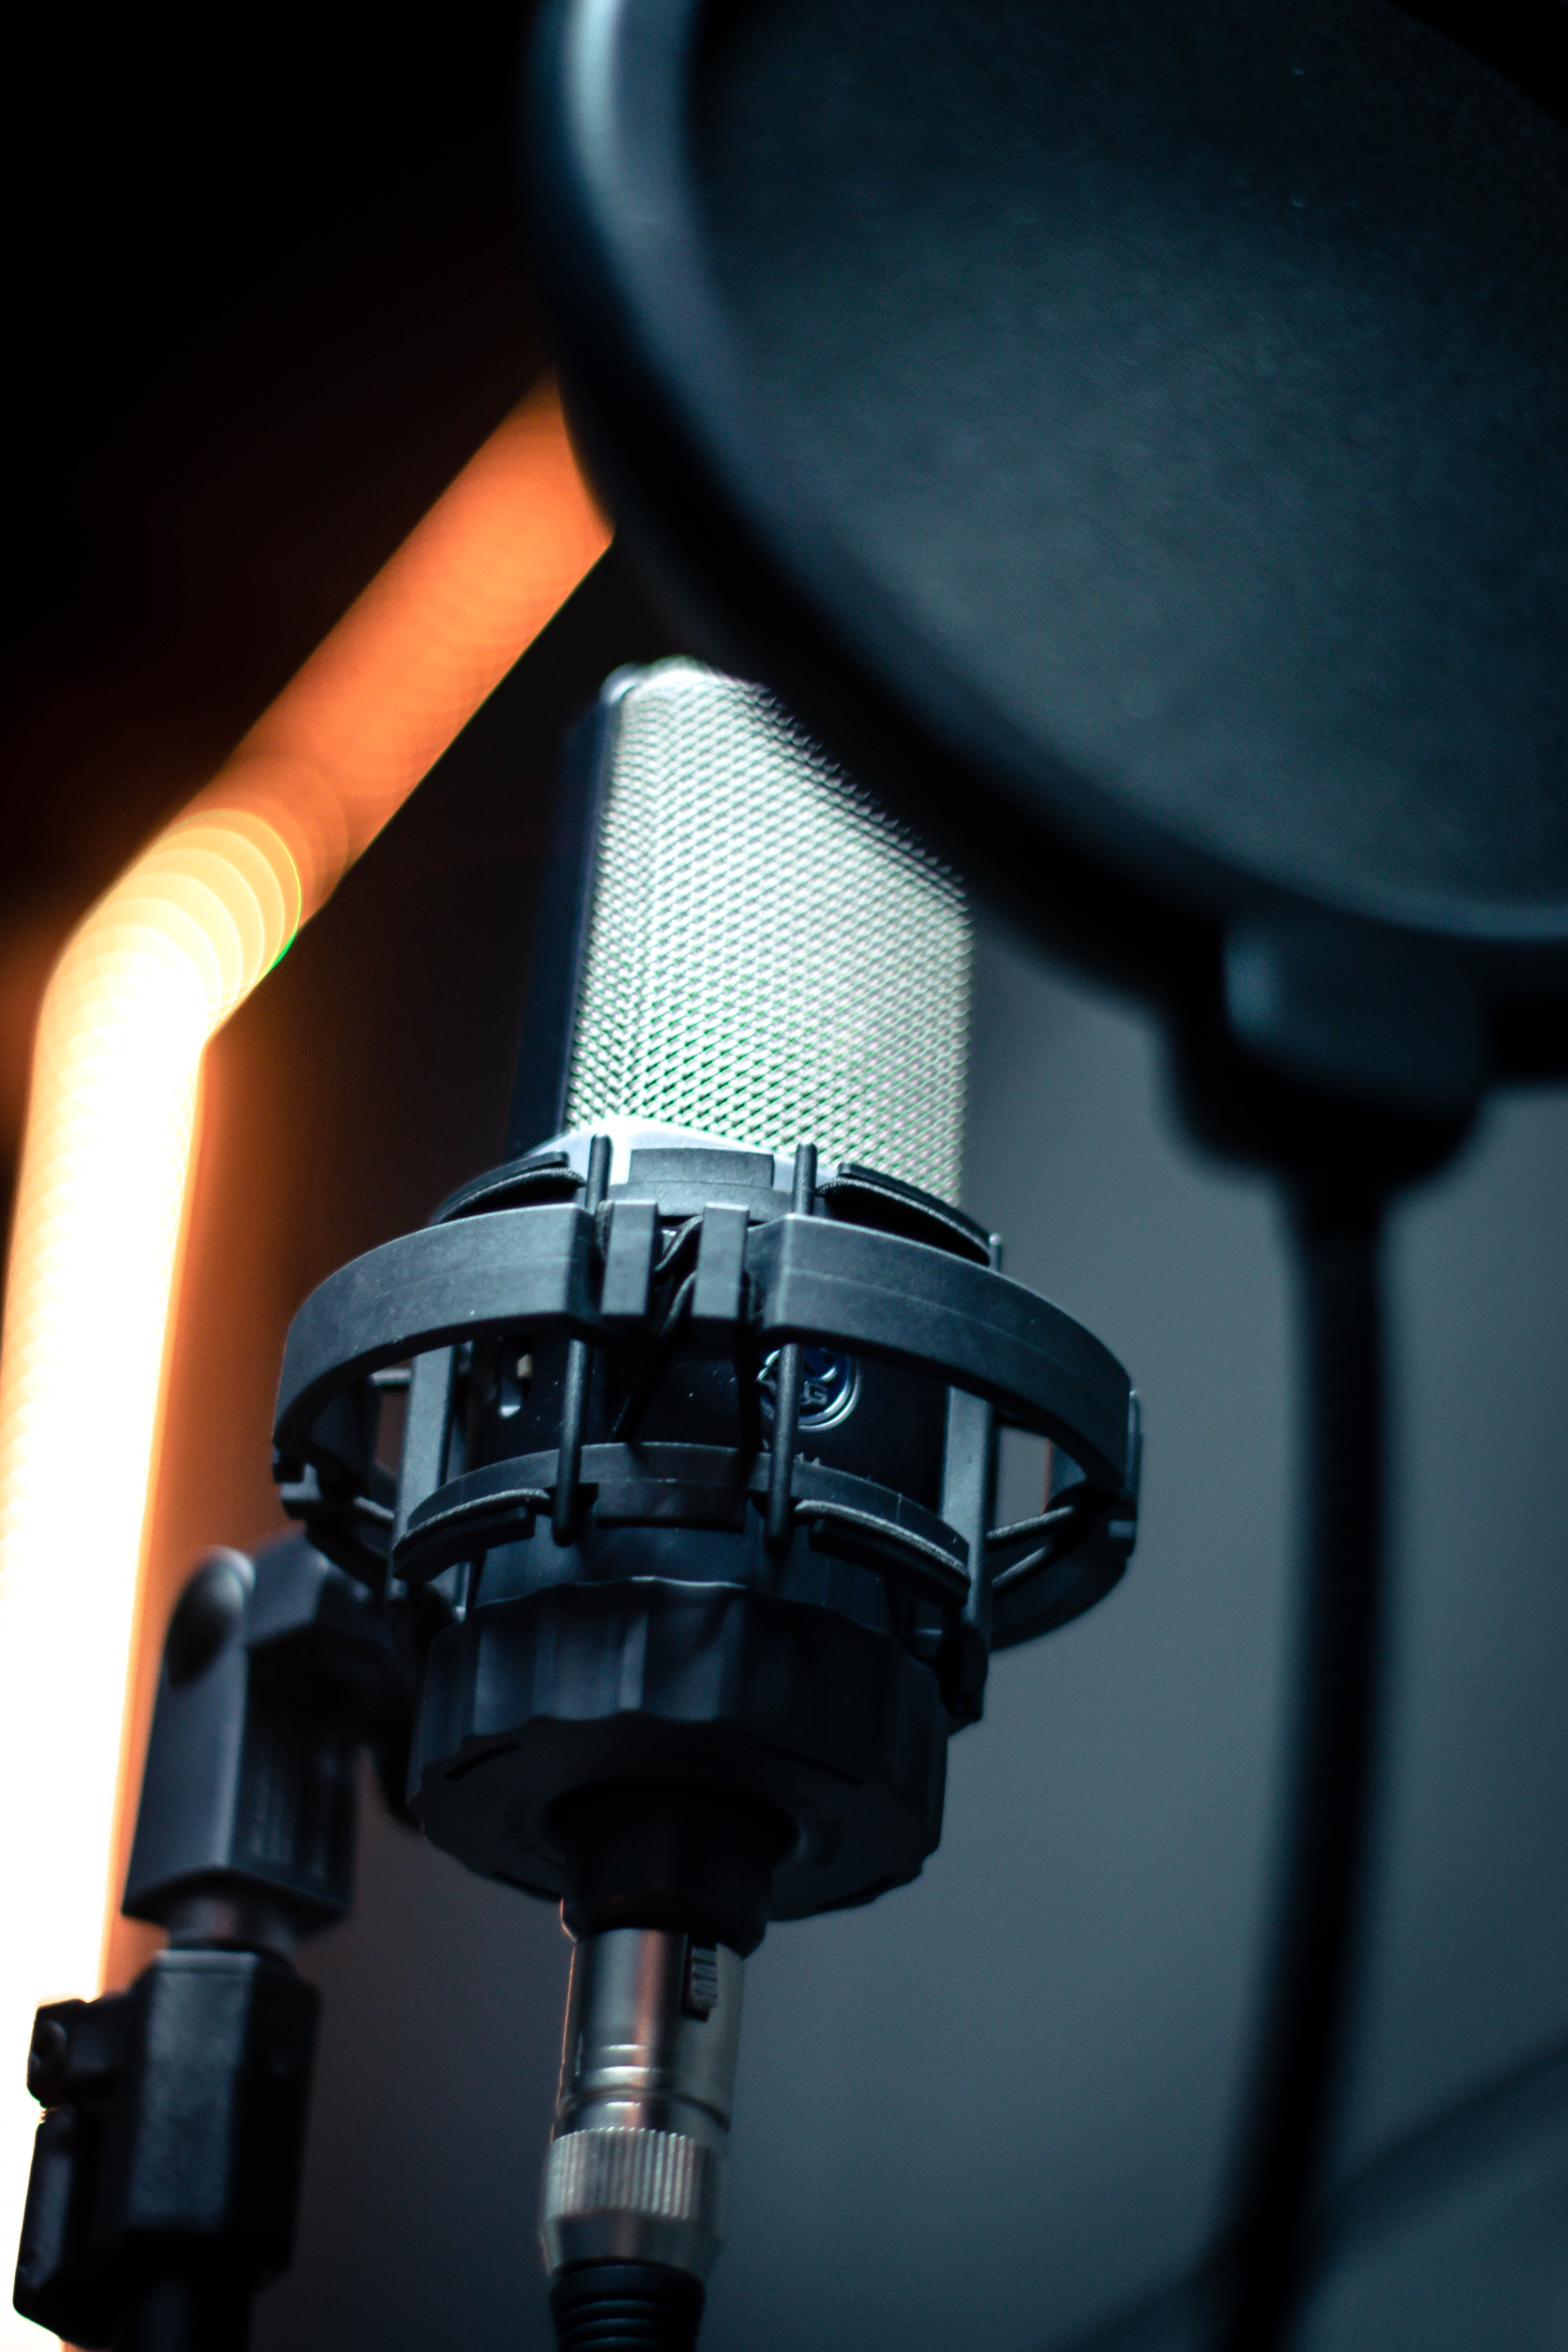 I Will Record 100 Words VOICEOVER For Your Project Same Day With the best quality